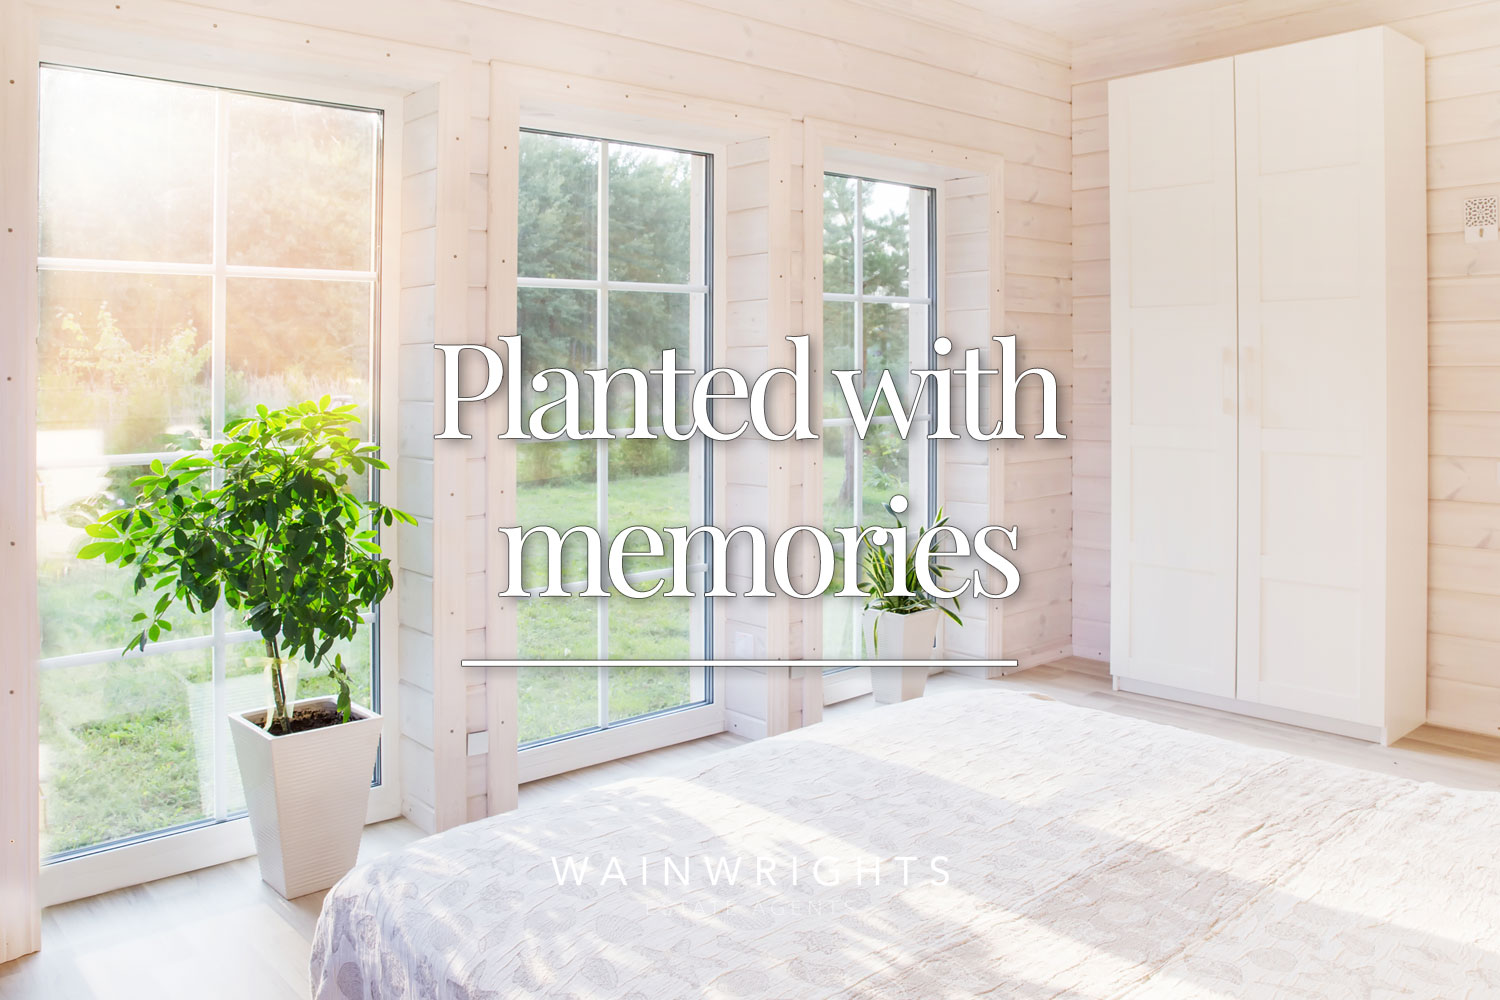 Planted with memories